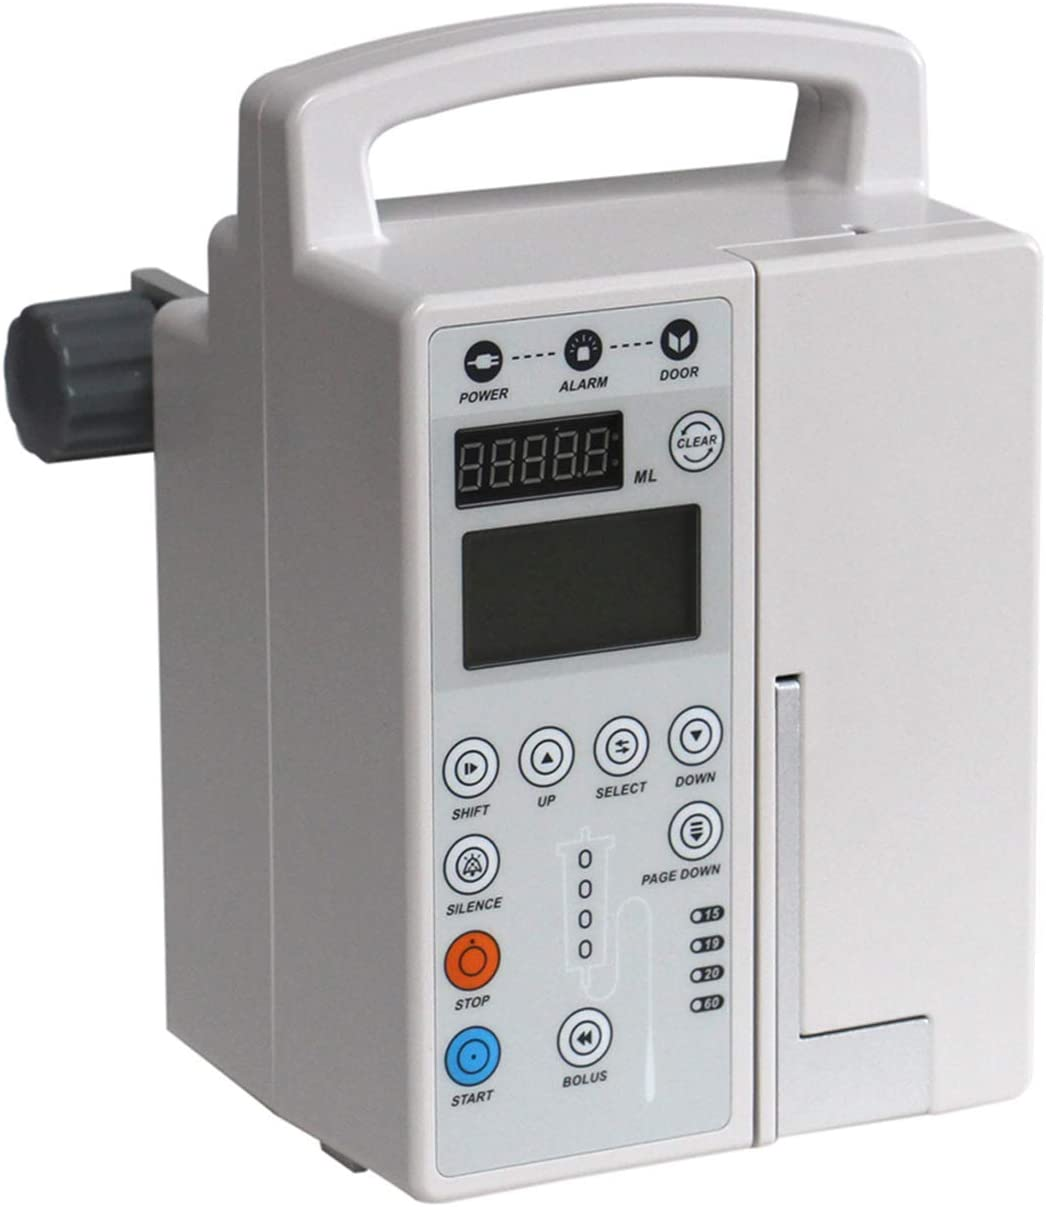 Rechargeable Automatic Audible and Visual Alarm Veterinary In-fusion Pump, Portable Fluid Administration Pump Machine with LCD Display, KVO, Alarm, Calibration